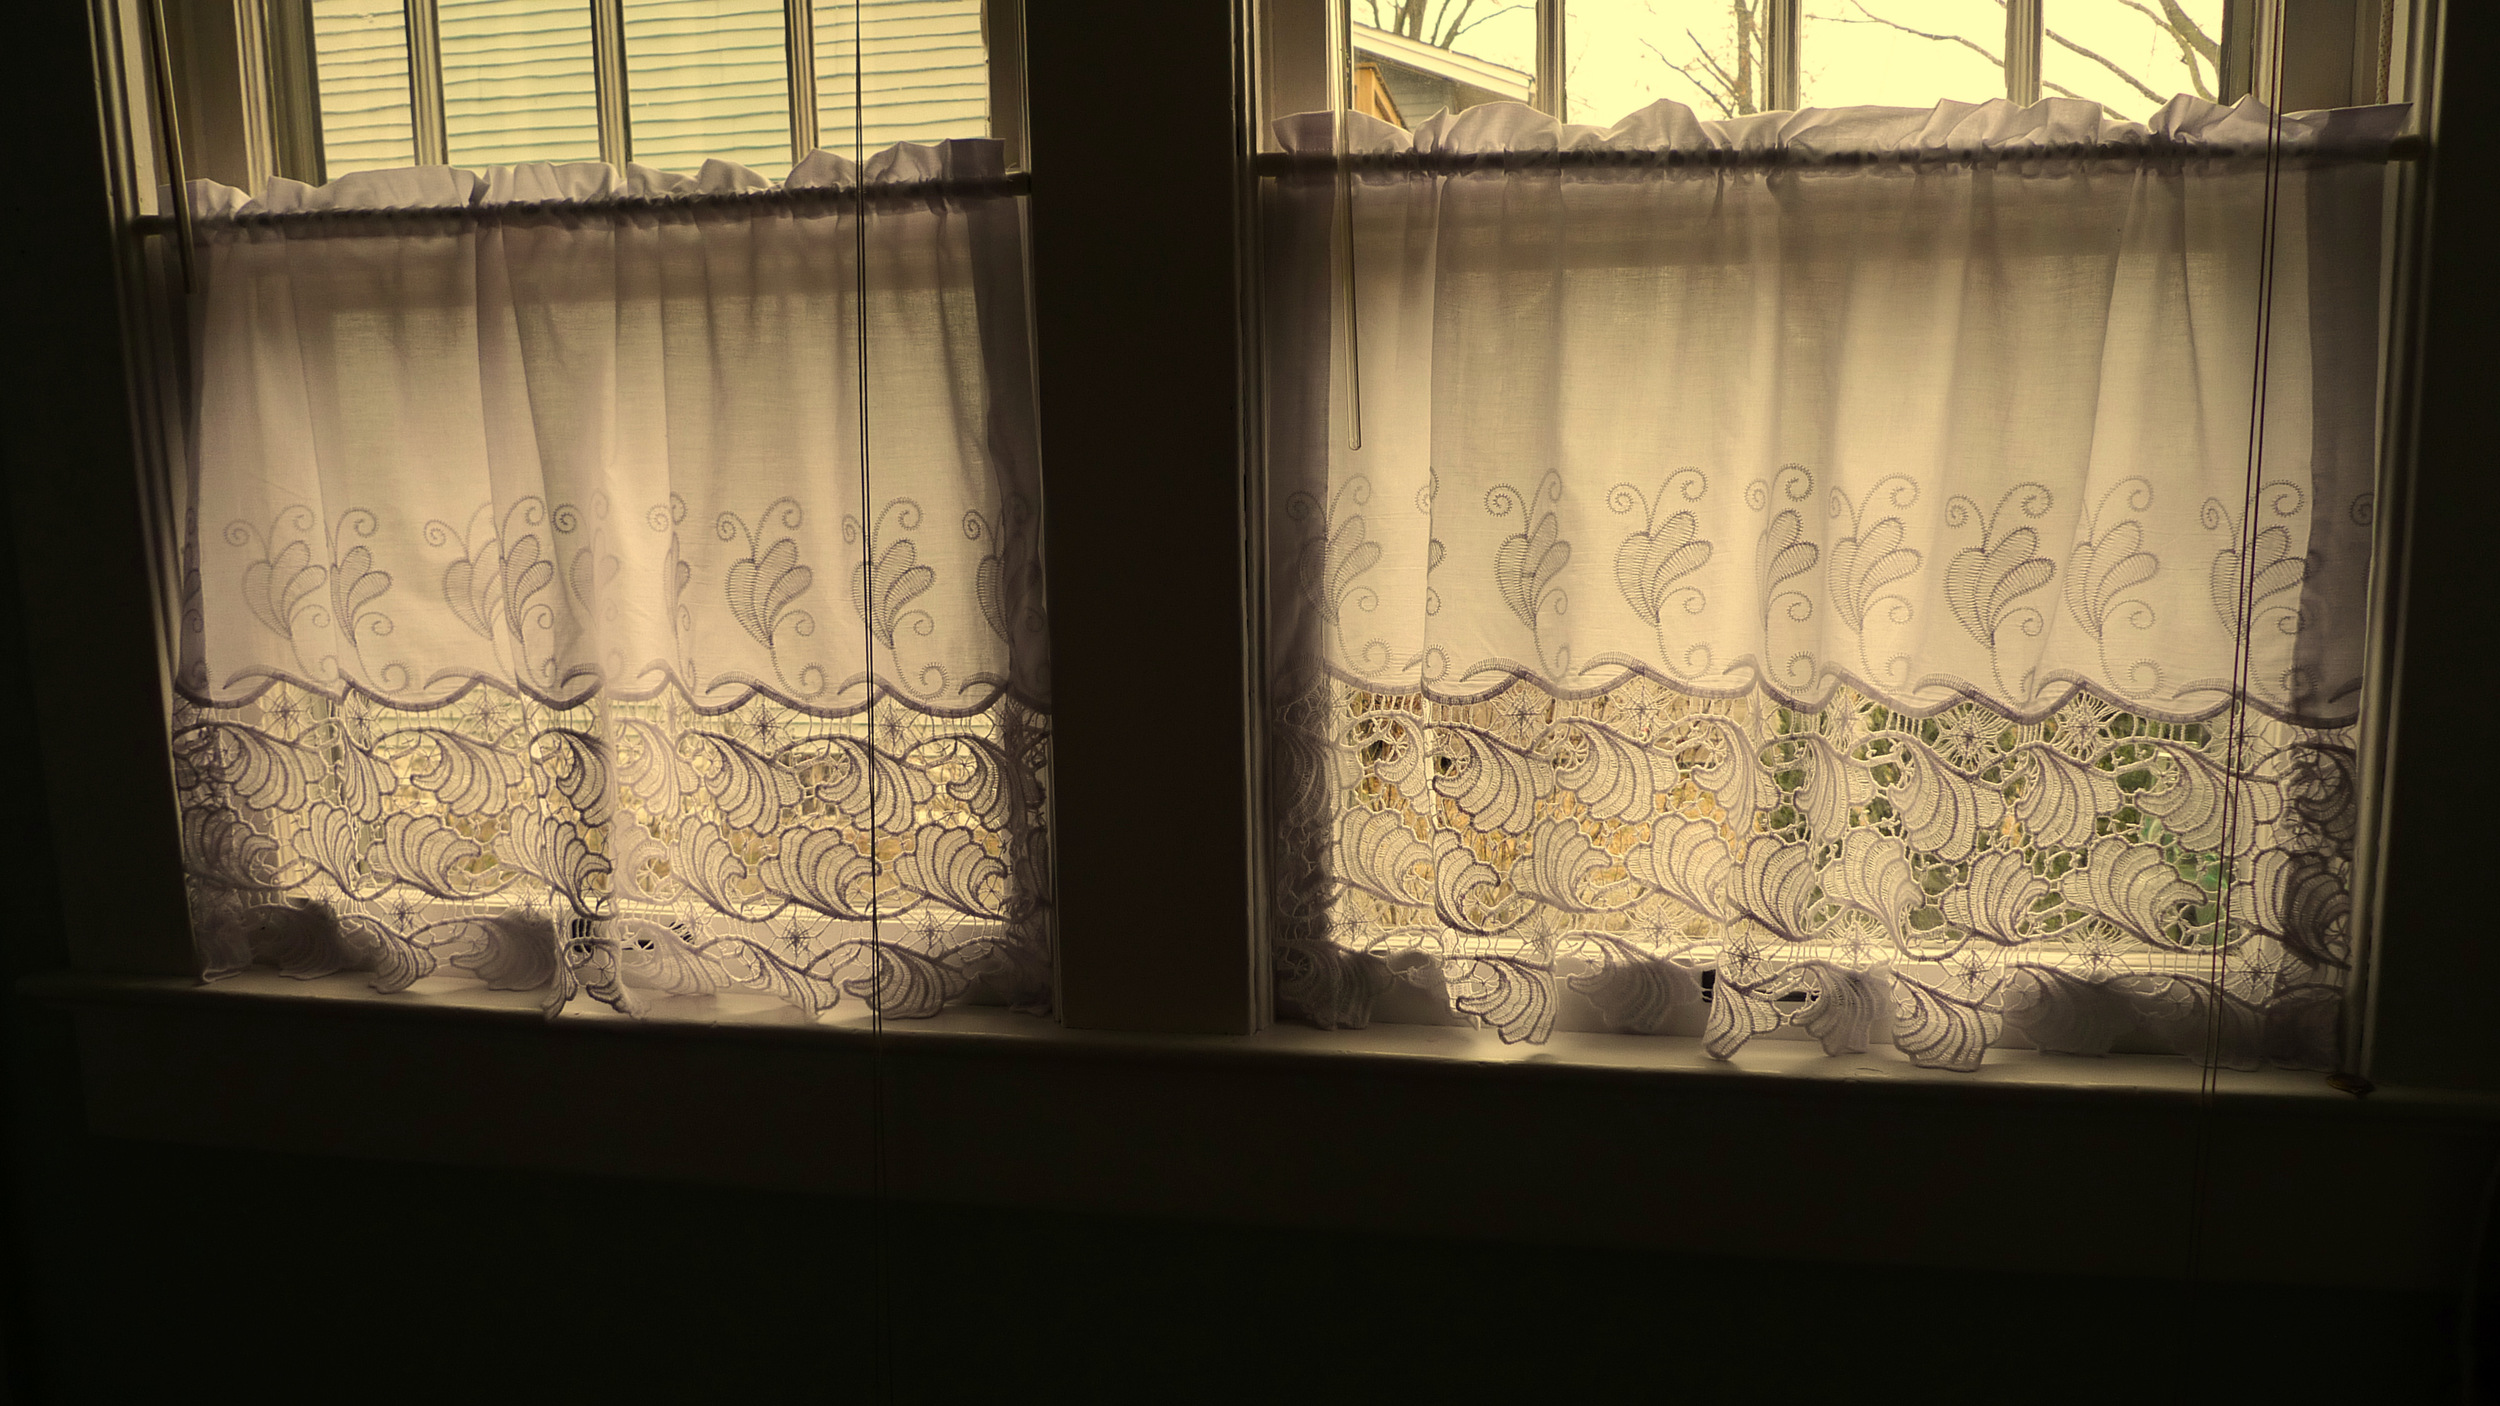 "And as cooler weather approaches, consider dressing your home's windows, to buffer chilling winds and glass.  Our interchangeable ""curtains,"" photo'd above, on easily removable spring-tension rods, allow for quick changes of fabric treatments.  Prices start @ $15/window."